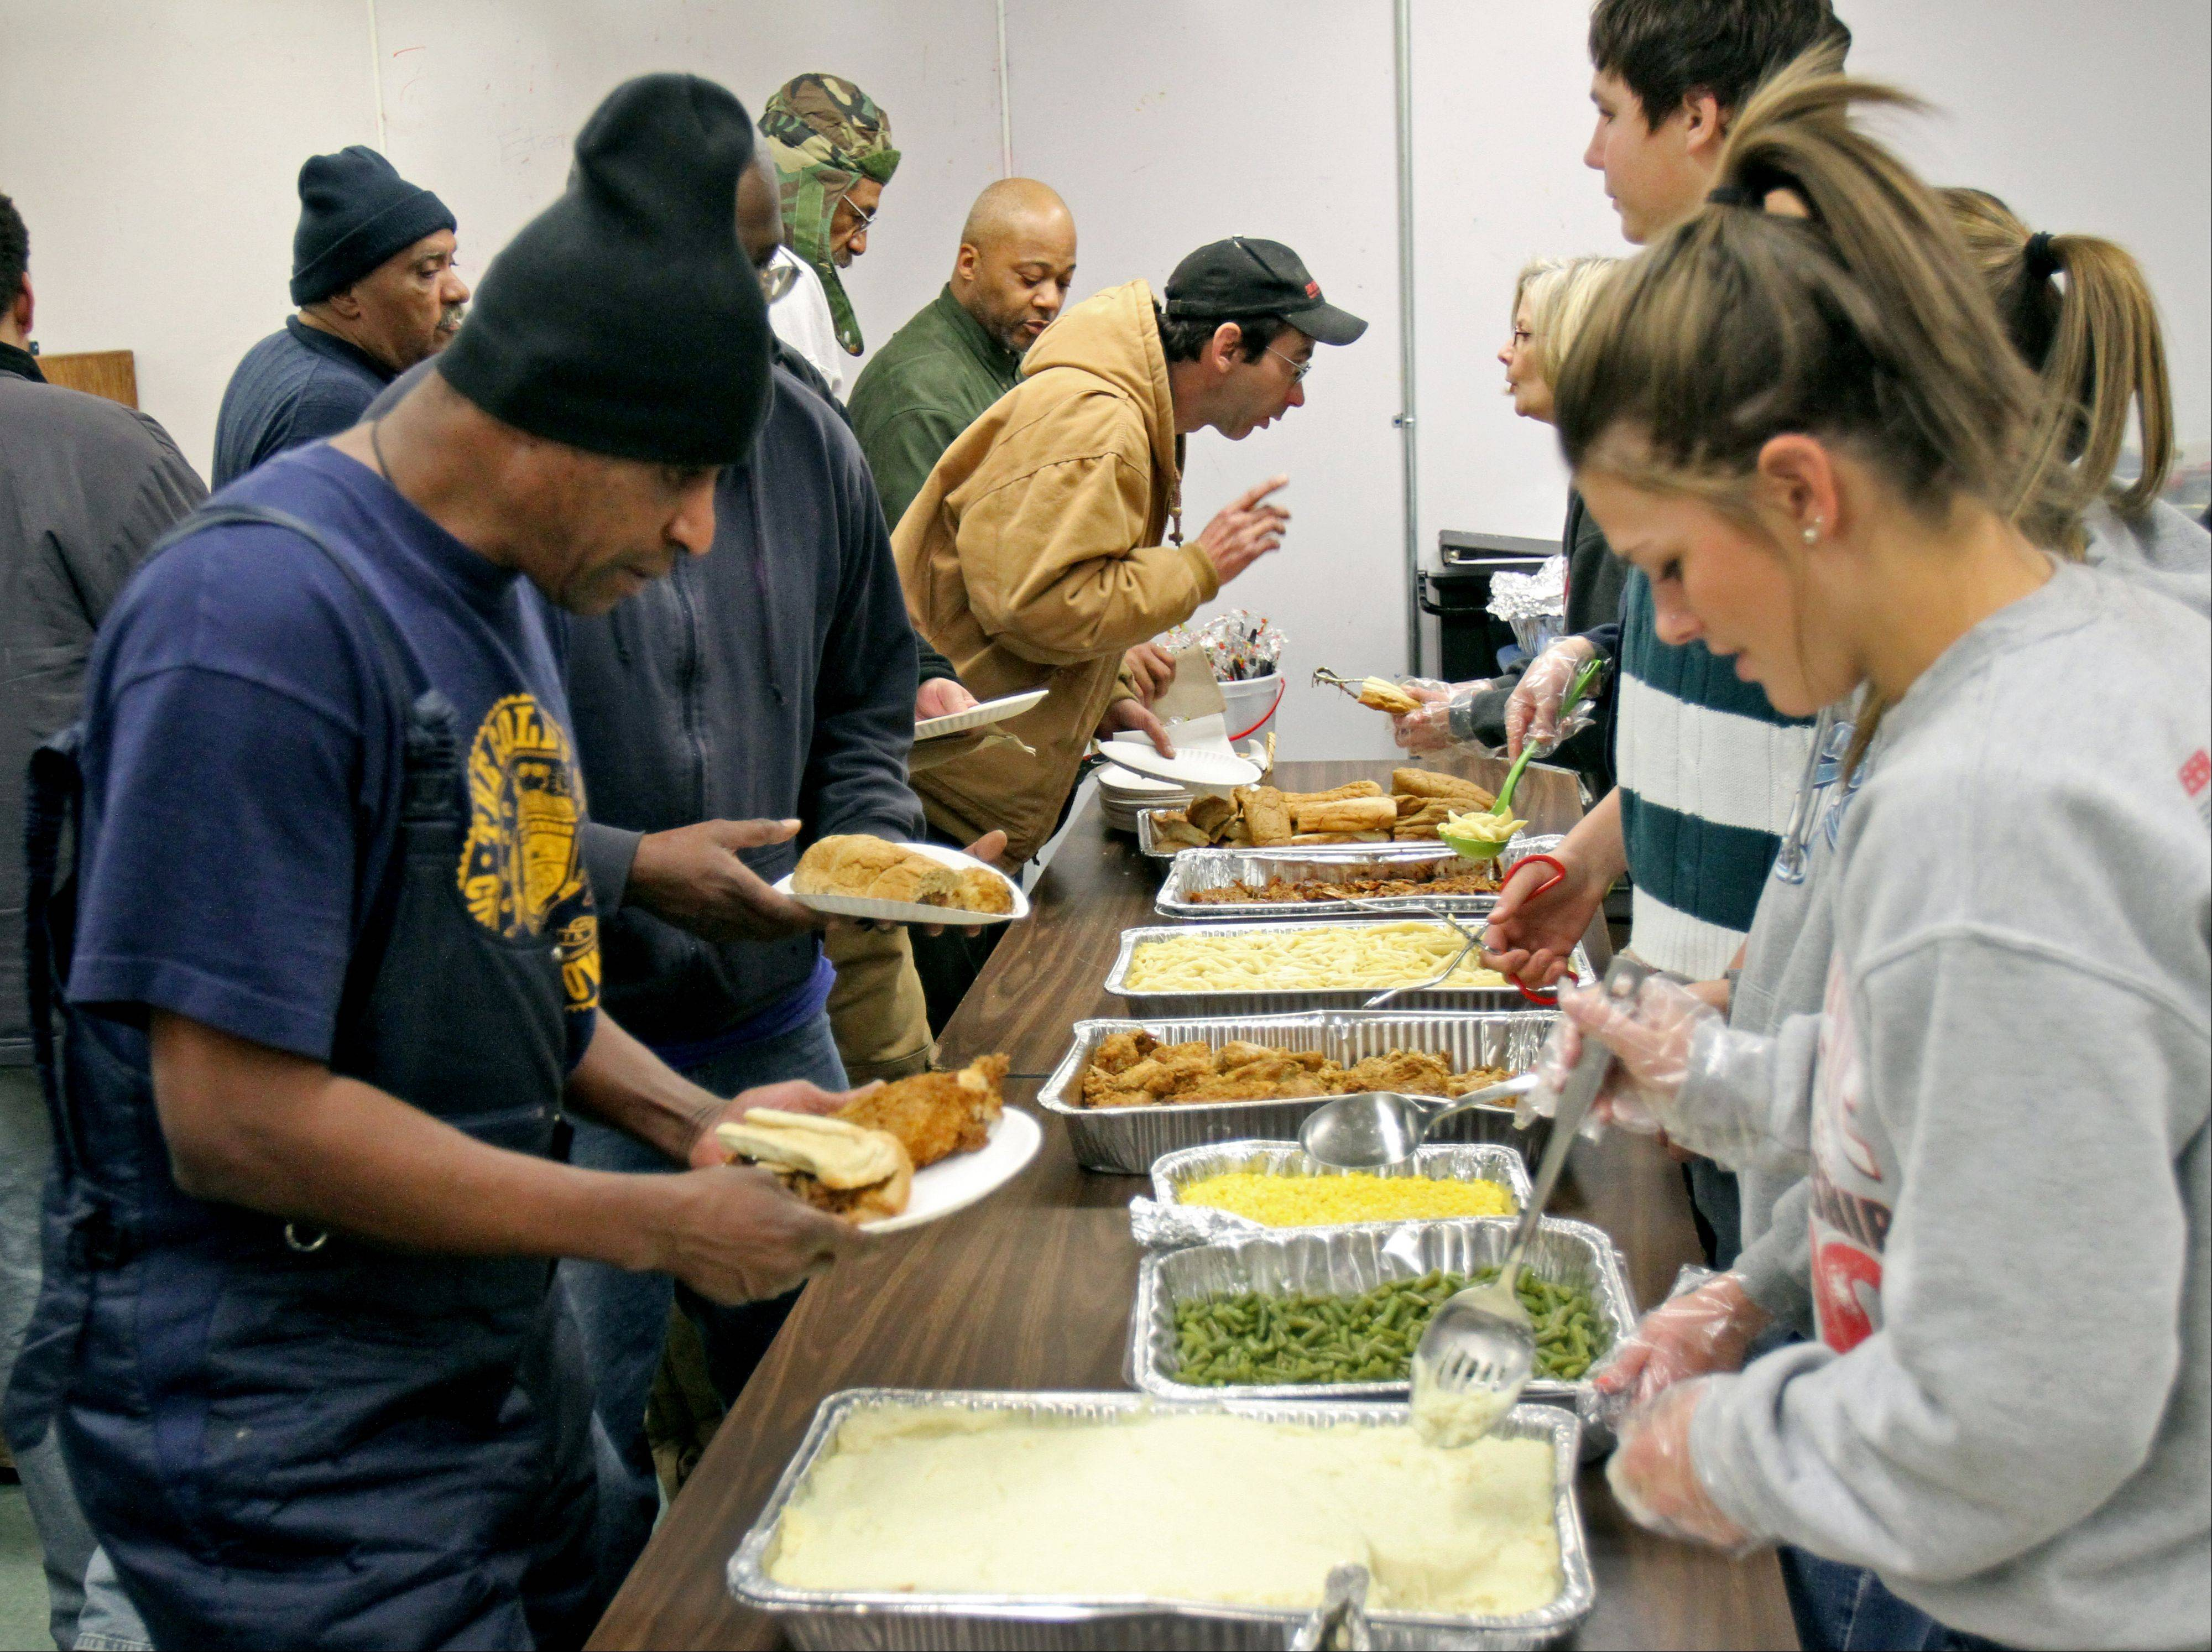 Steve Lundy/DAILY HERALD PADS guests line up for a meal as volunteers dish out some food at the Libertyville PADS shelter sponsored by St. Joseph Catholic Church in this file photo from 2010. More poor people live in the nation's suburbs than in urban cities because of affordable housing, service-sector jobs and the increased use of housing vouchers, according to a study released Monday.